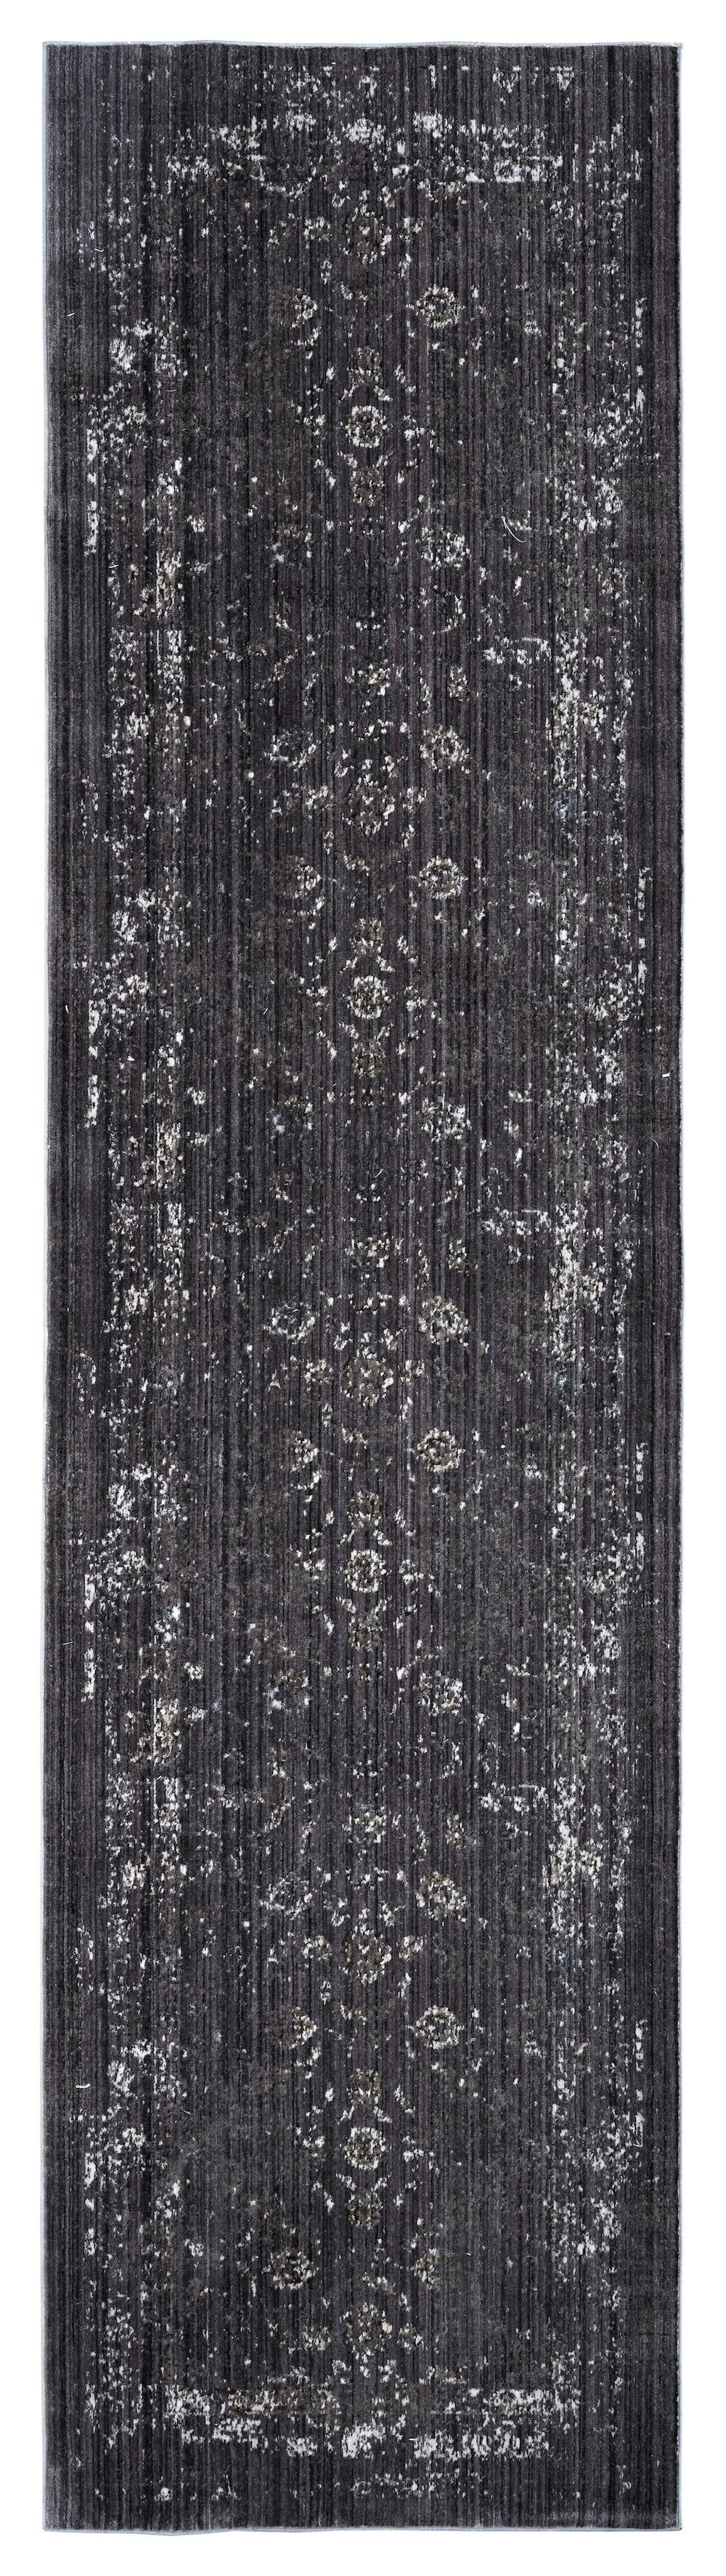 Tamara Dark Grey and Cream Floral Transitional Runner Rug